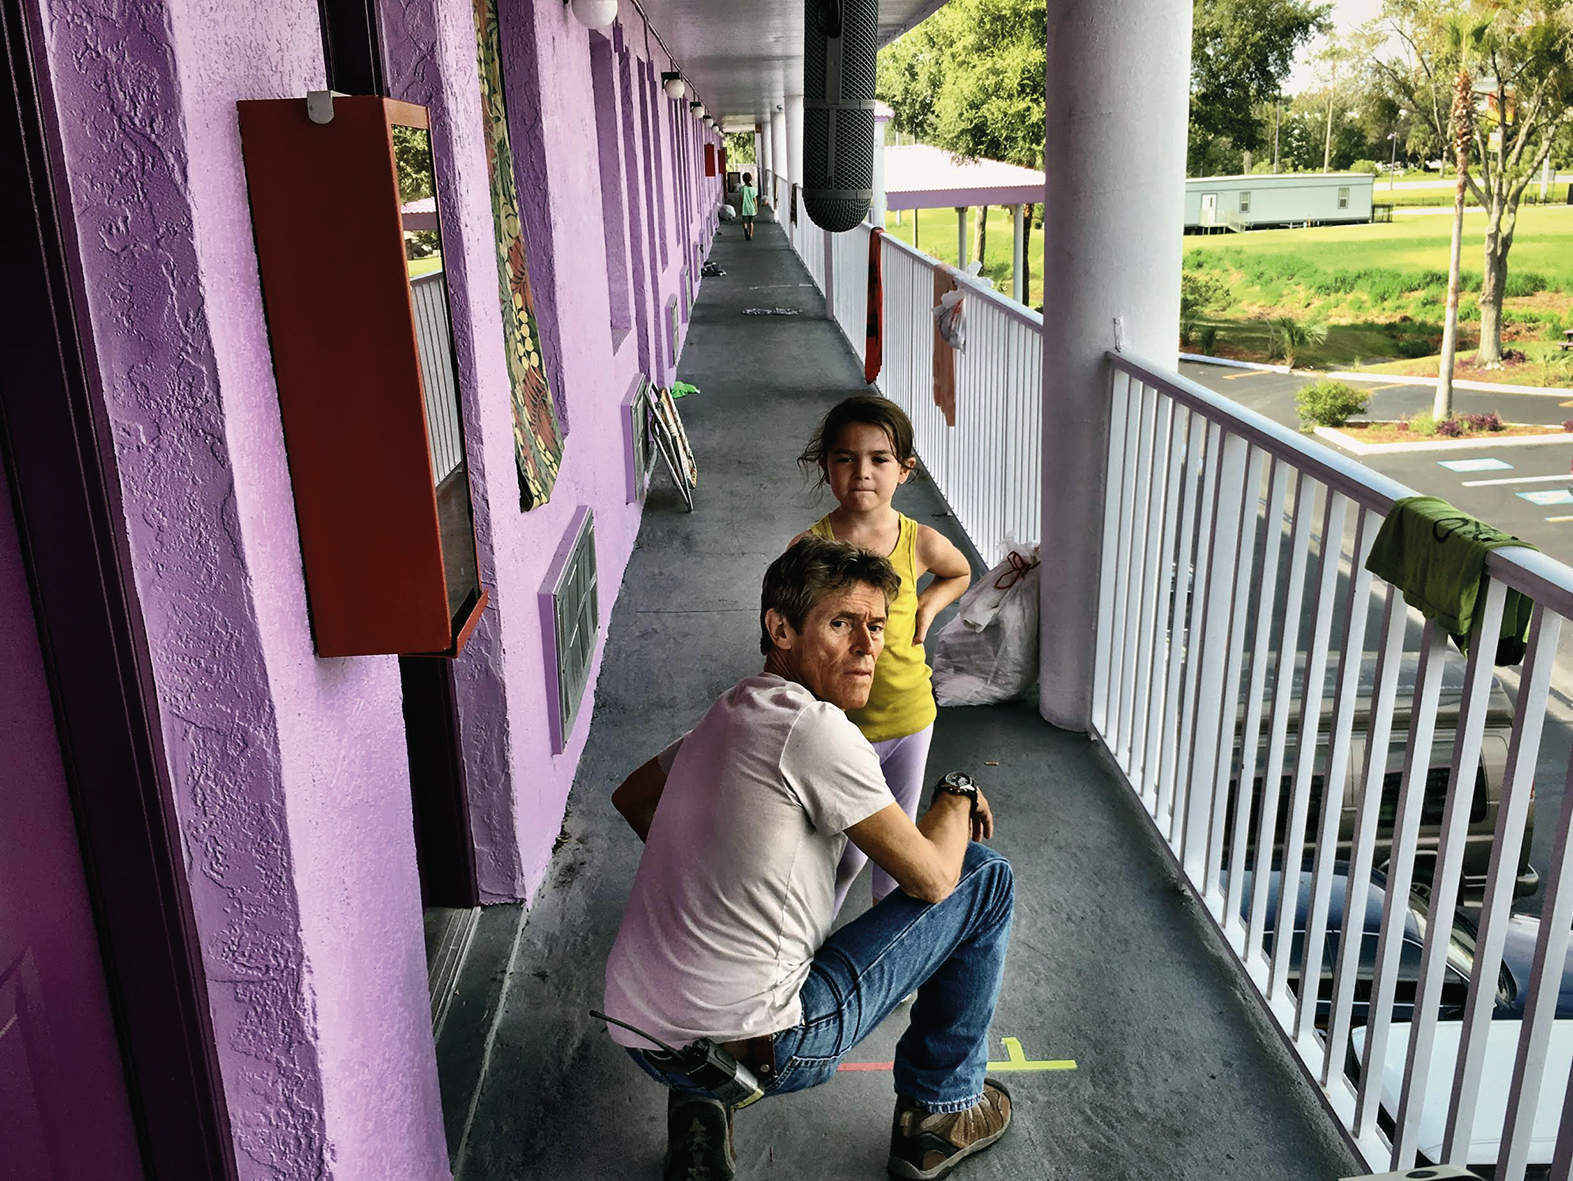 The Florida Project is an empathy-provoking series of vignettes on childhood